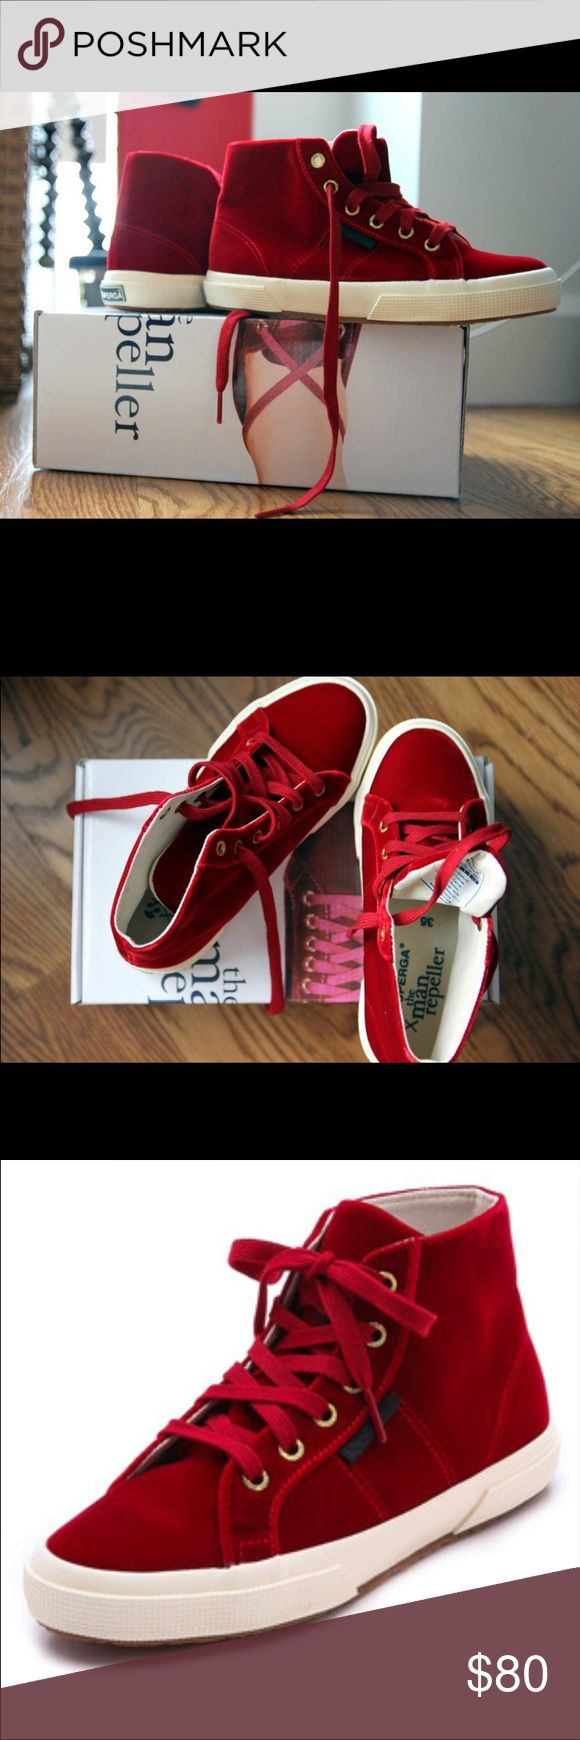 SUPERGA MAN REPELLER RED SNEAKERS. Worn only once! Comfy and trendy sneakers. Great condition hardly worn. Superga Shoes Sneakers